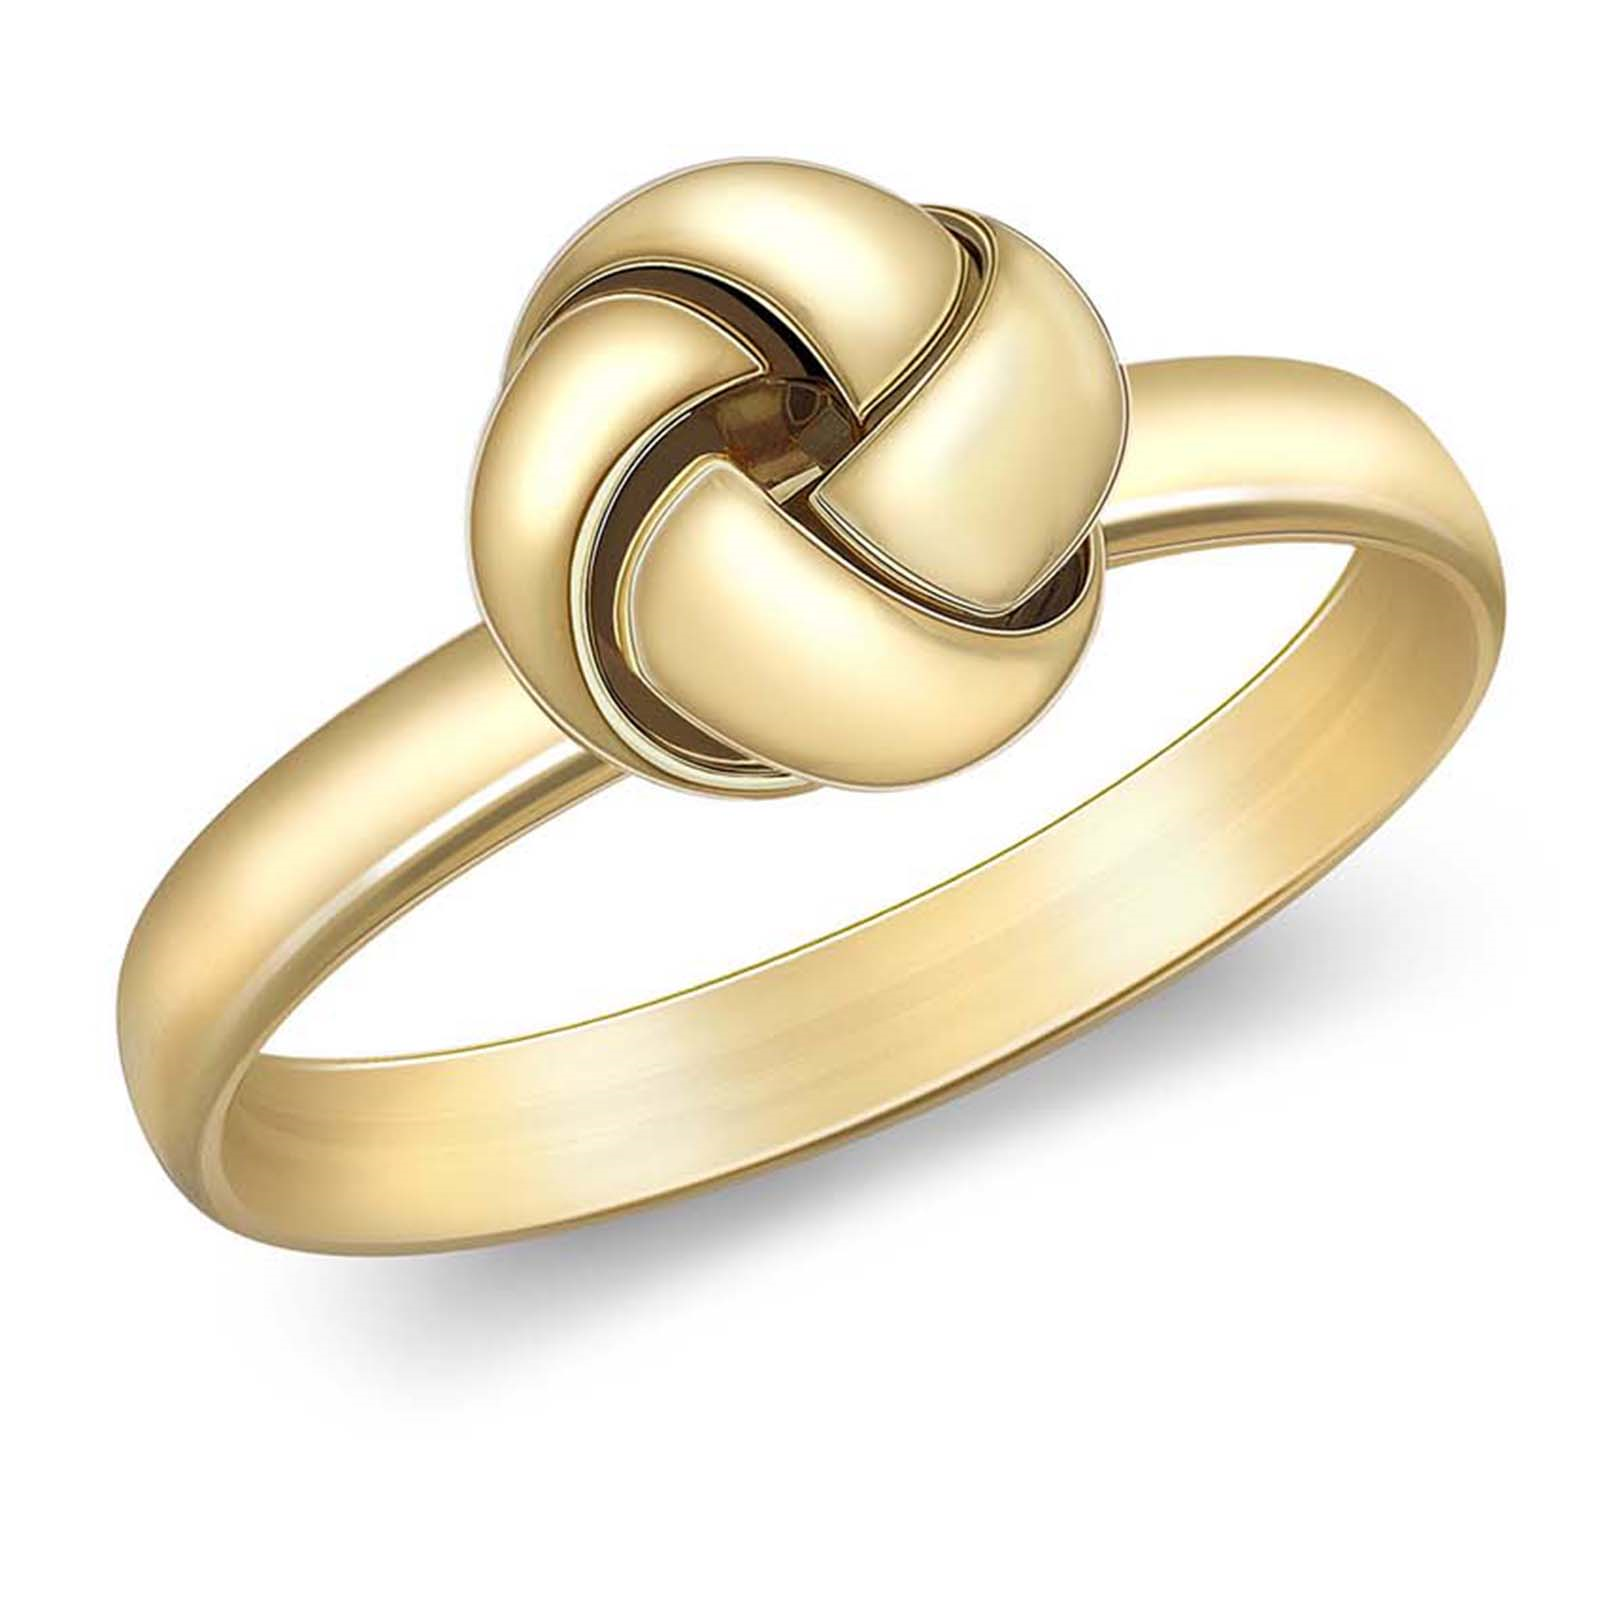 9ct Yellow Gold 4 Way Knot Ring - Ring Size M